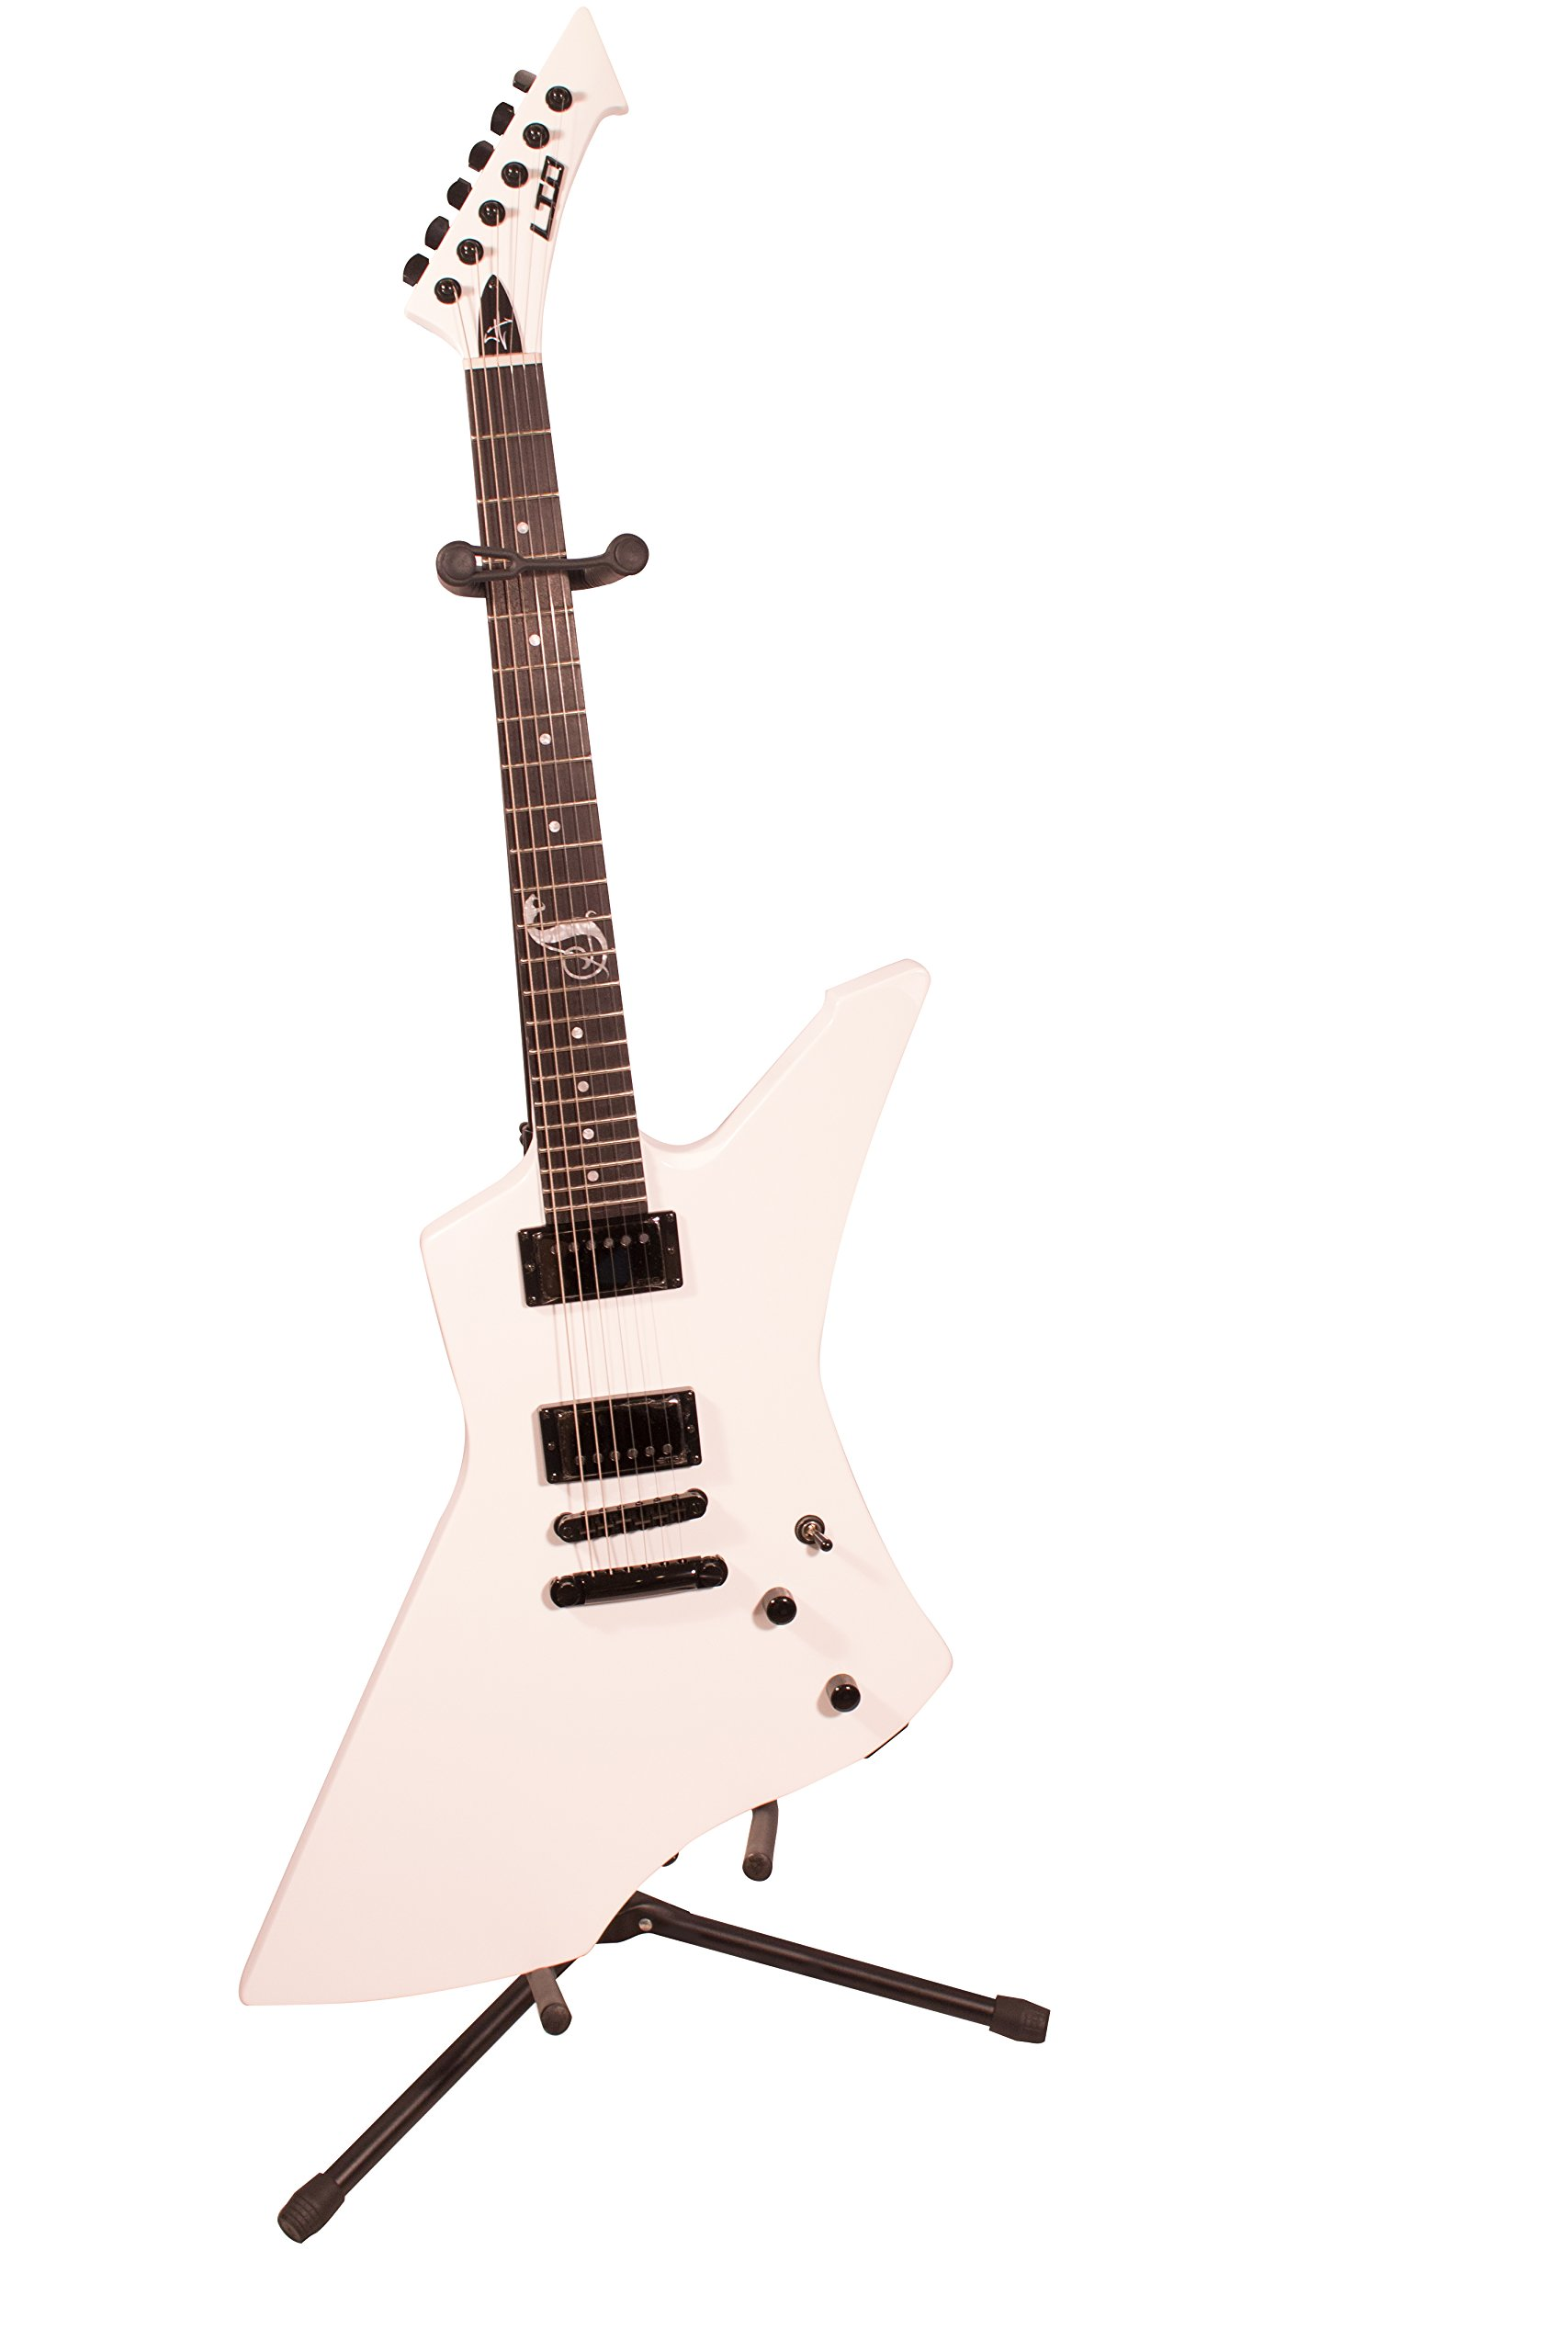 ChromaCast 2 Tier Adjustable Upright Guitar Stand by ChromaCast (Image #1)